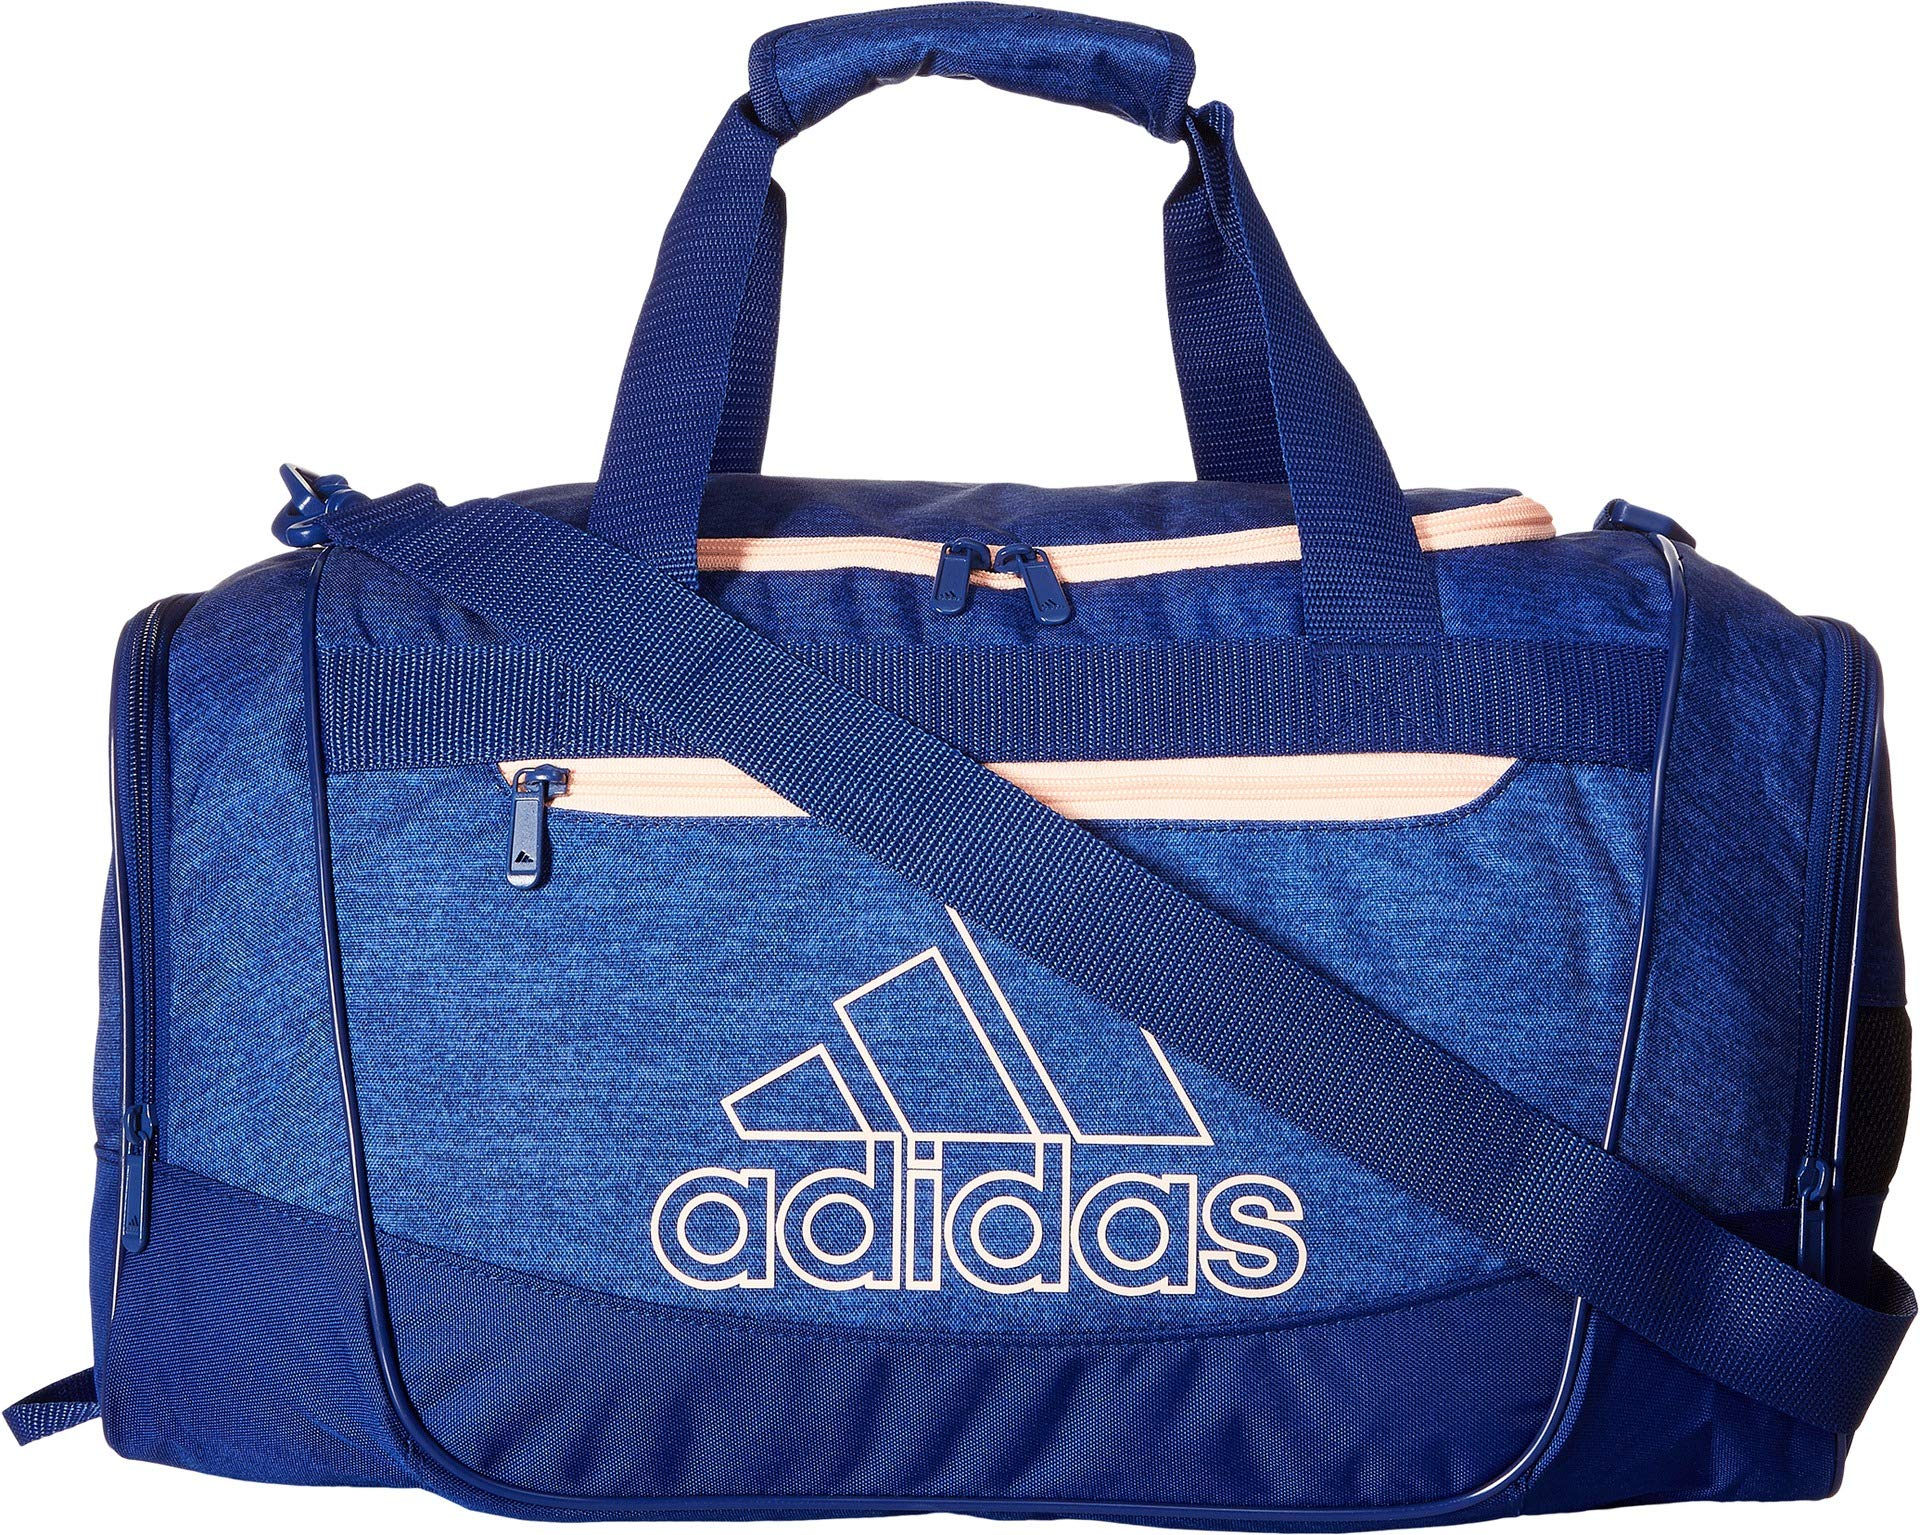 Galleon - Adidas Defender III Duffel Bag, Mystery Ink Blue Jersey Mystery  Ink Blue Clear Orange, Small 2711d0be2c